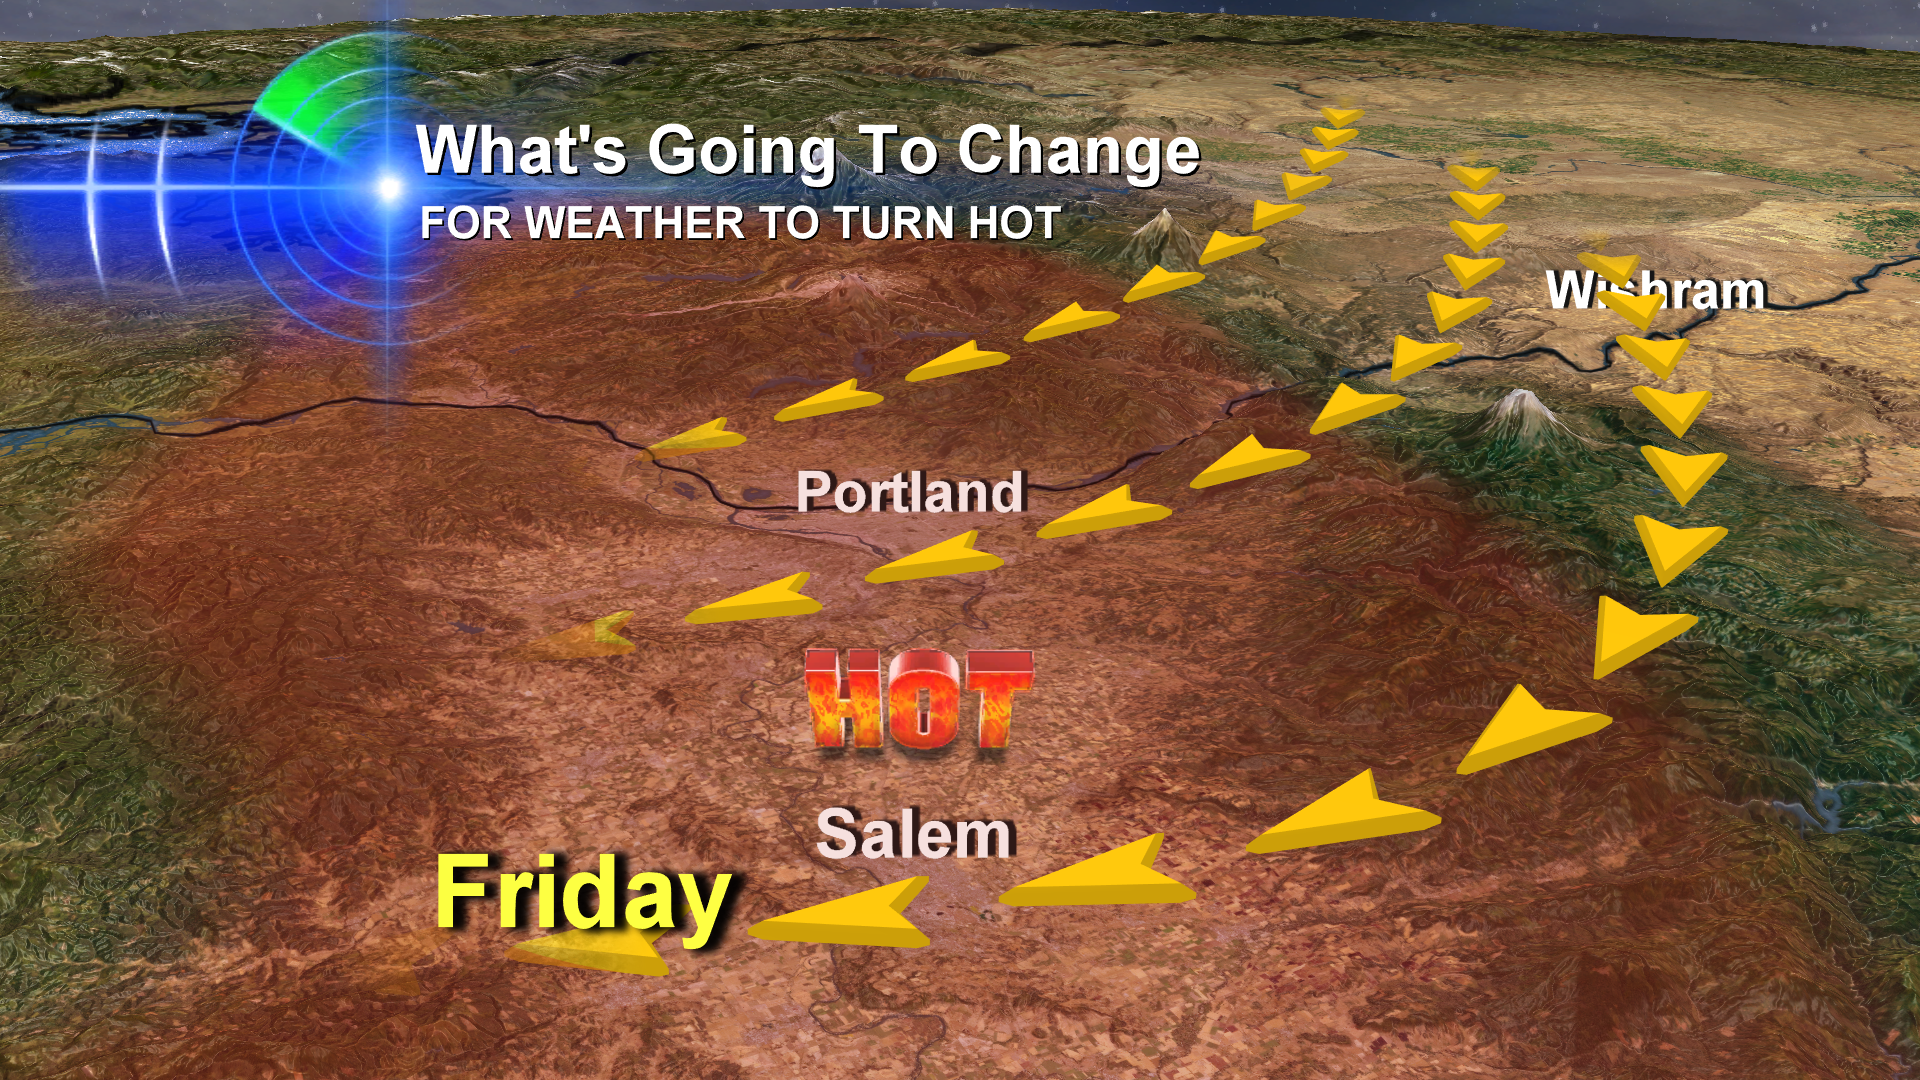 Weekend Heat: Flirting With 100 Degrees In The Willamette Valley